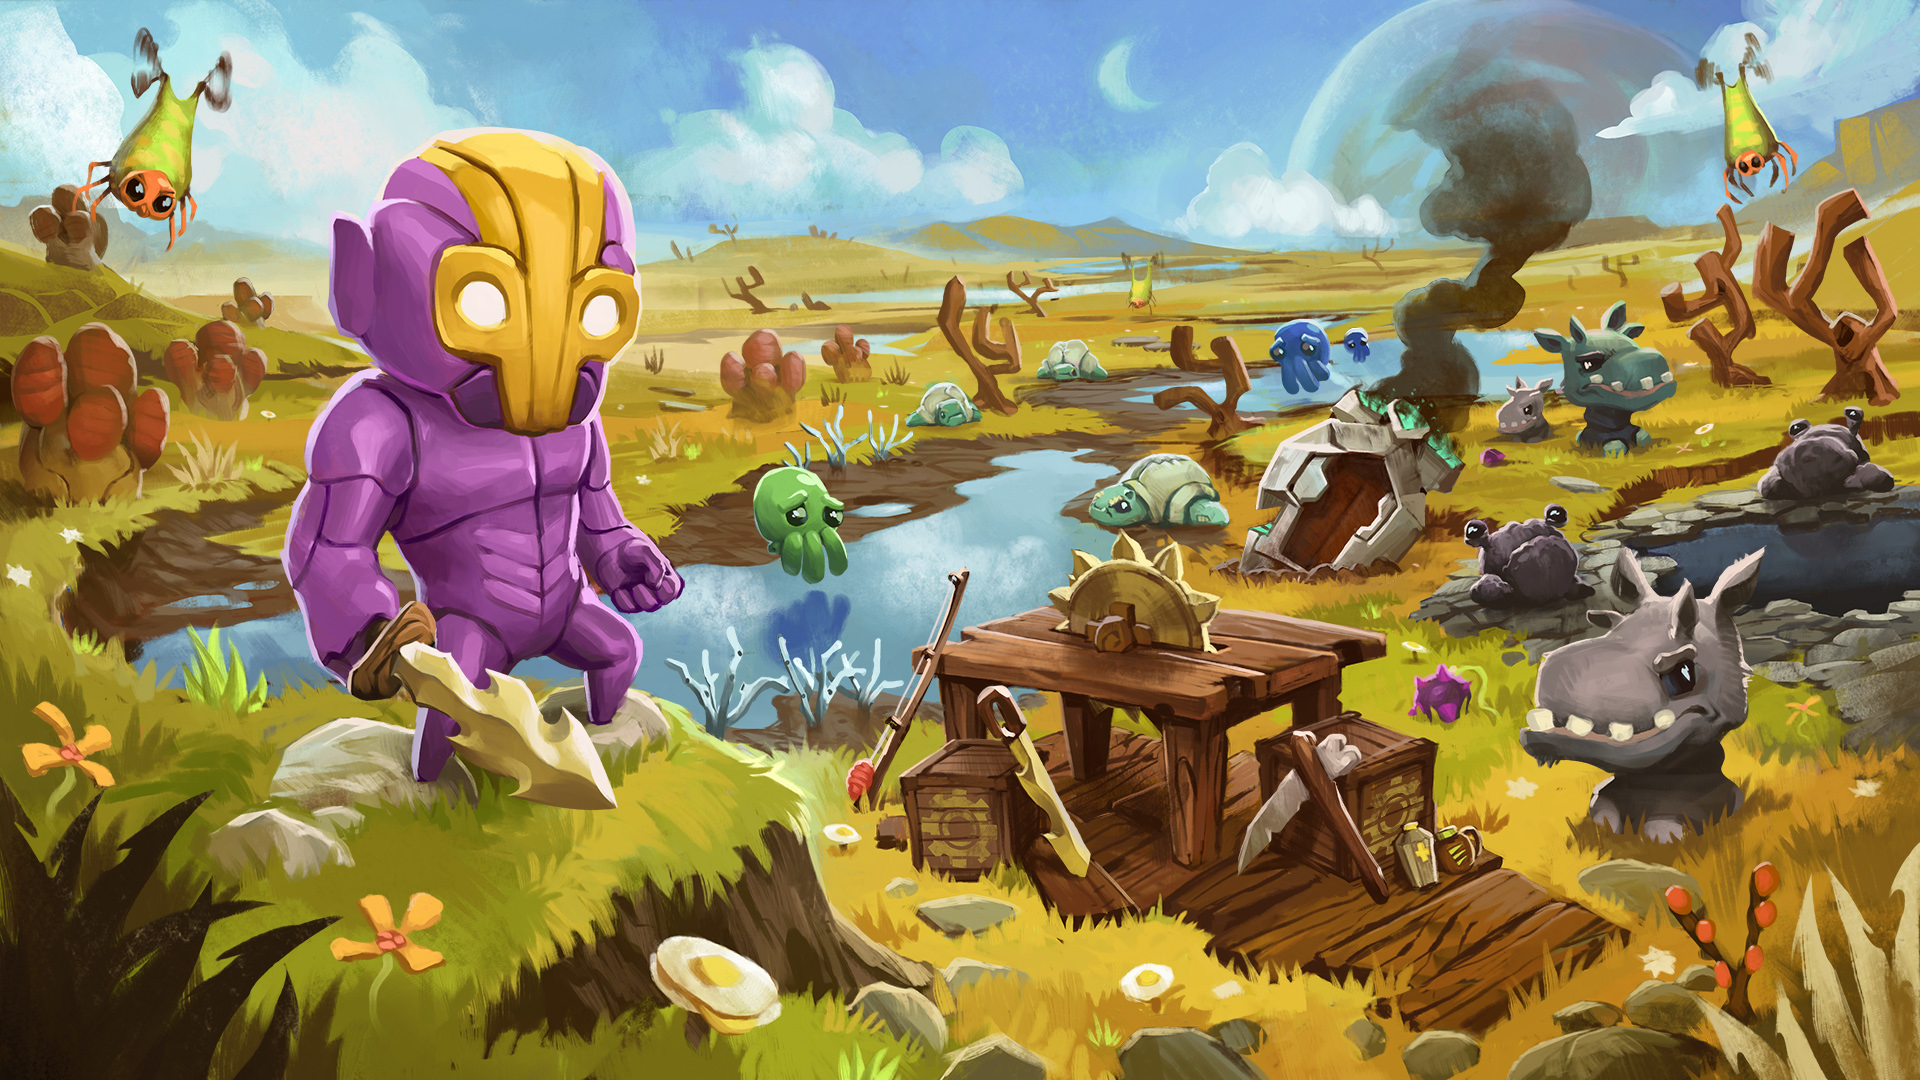 [Update] Crashlands is getting a new patch tomorrow, adds new colorblind options, enhances map and more